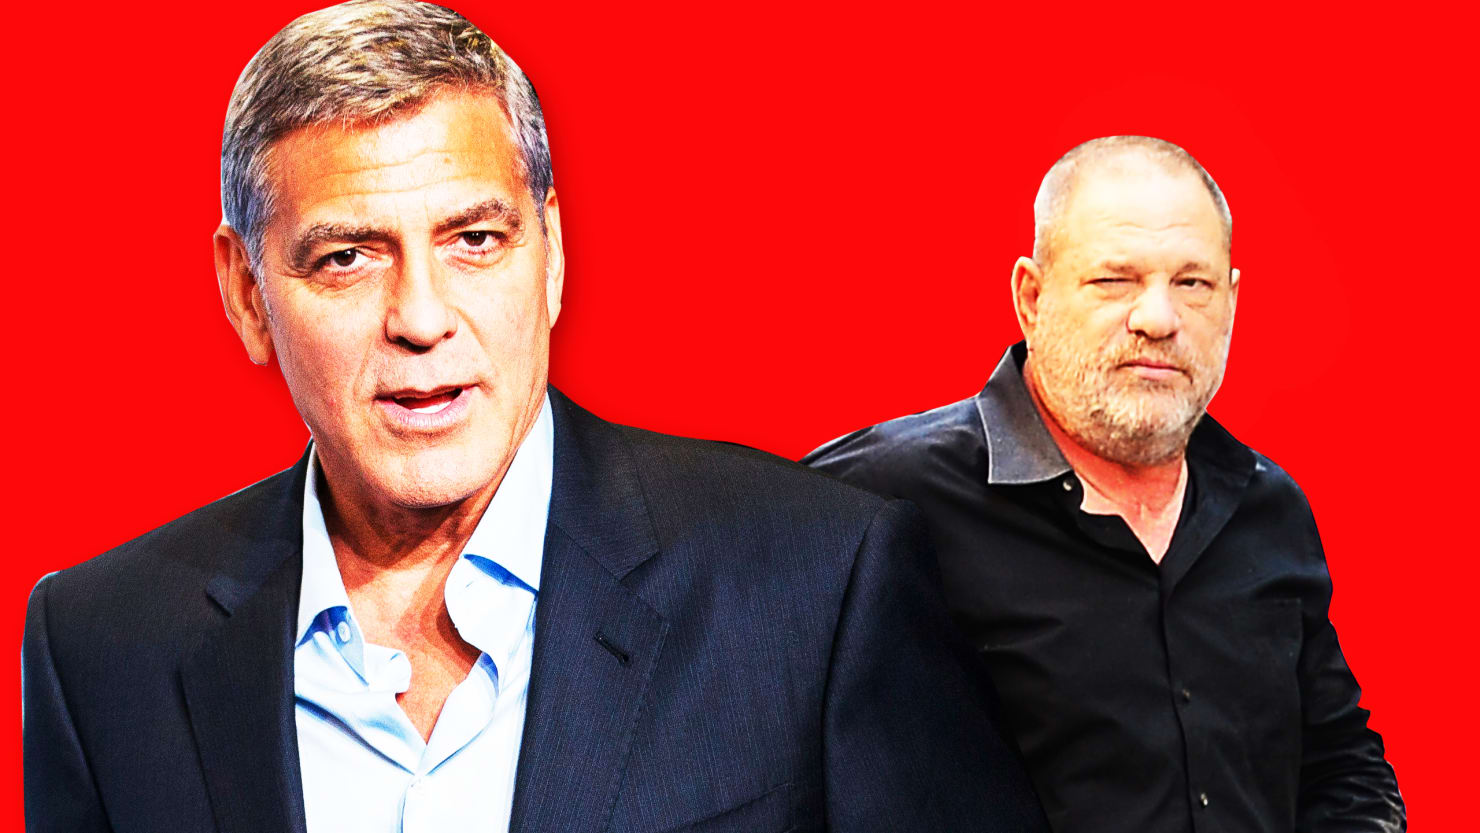 George clooney speaks out on harvey weinstein its disturbing on the actor filmmaker philanthropist opened up to the daily beast about the sexual misconduct allegations against harvey weinstein and hollywood complicity stopboris Image collections